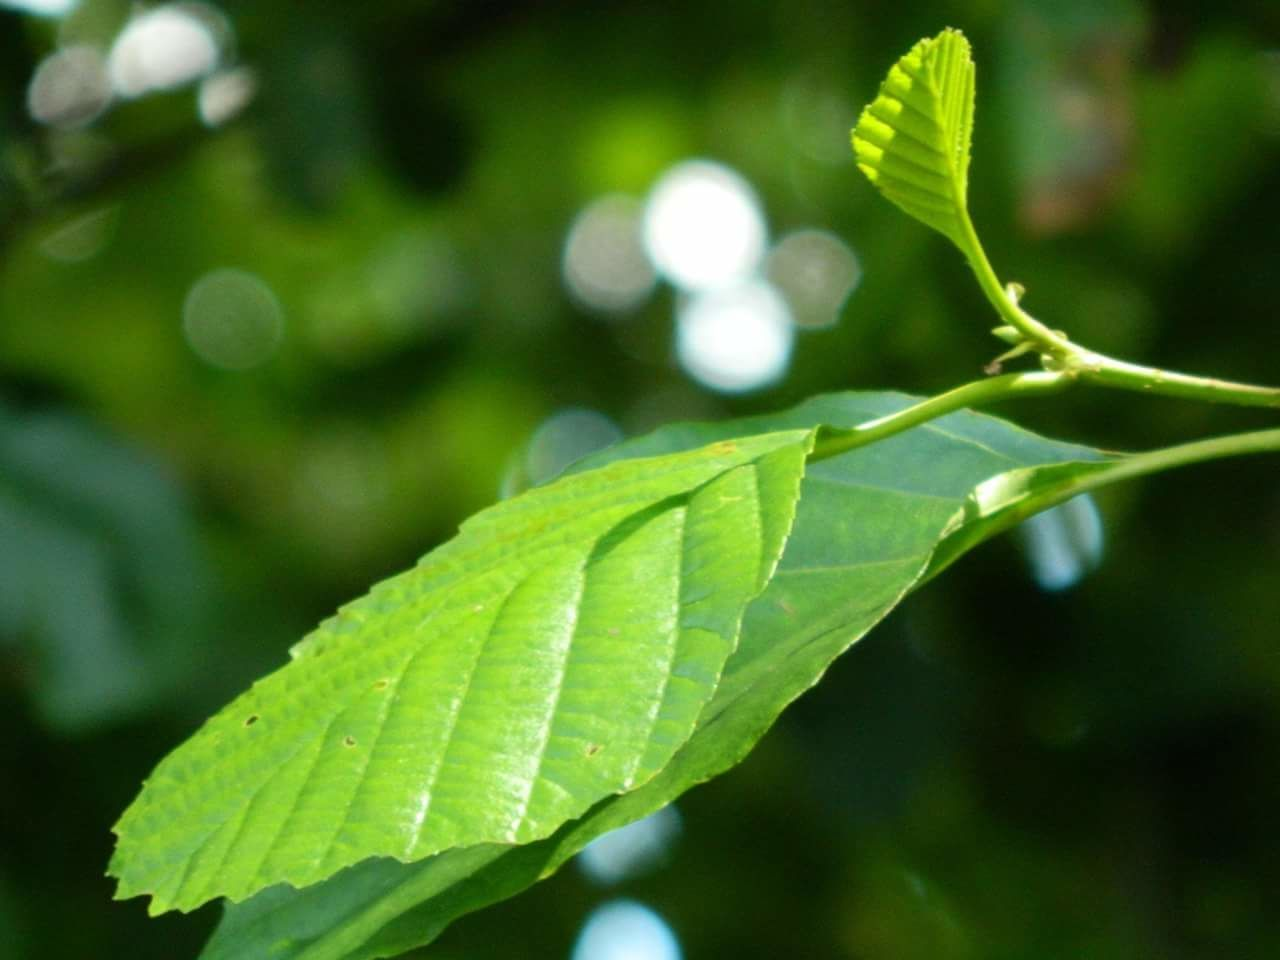 green color, leaf, growth, nature, close-up, focus on foreground, day, plant, freshness, outdoors, beauty in nature, sunlight, no people, tree